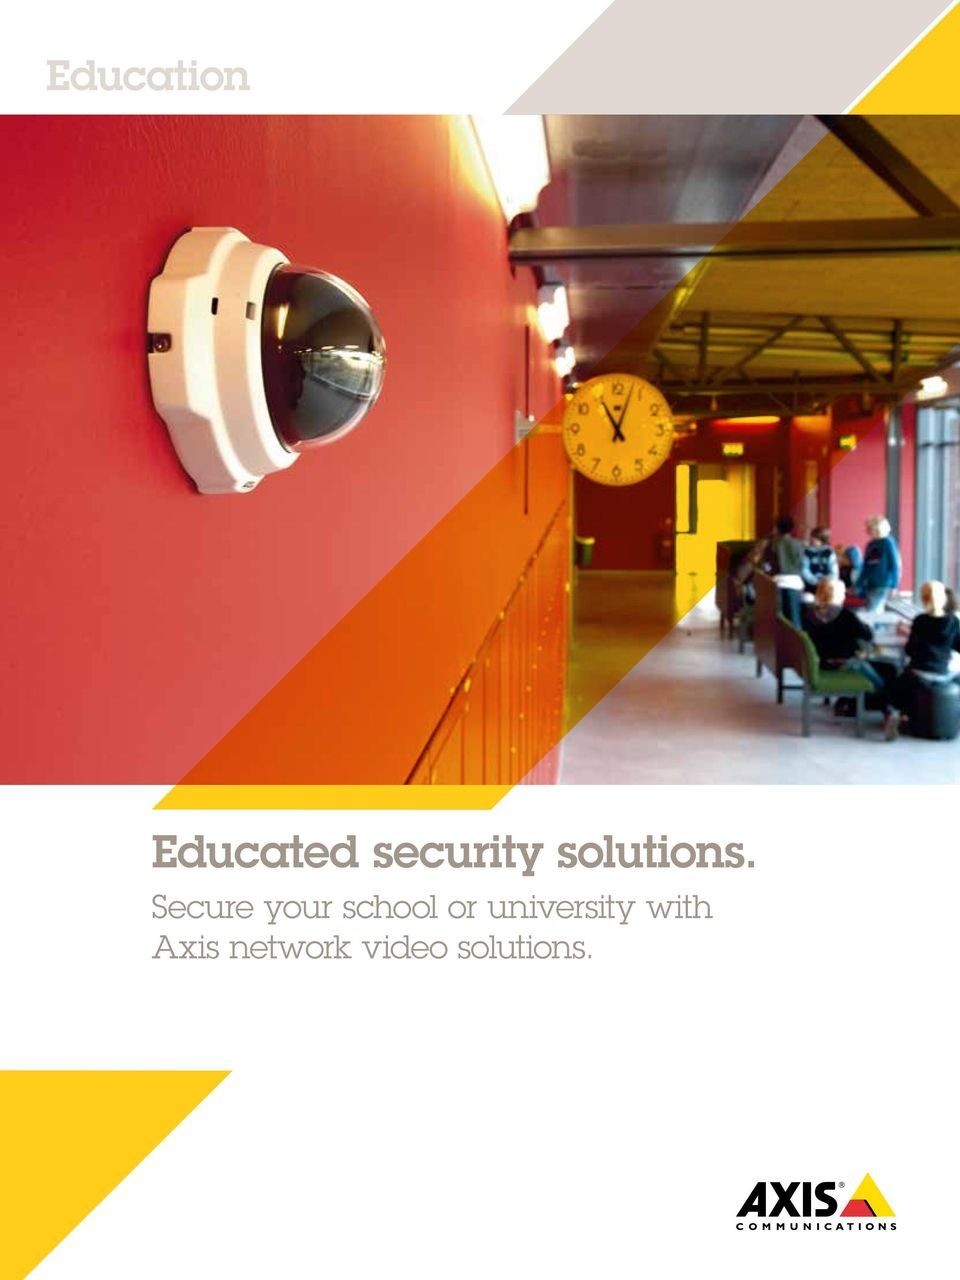 Secure your school or